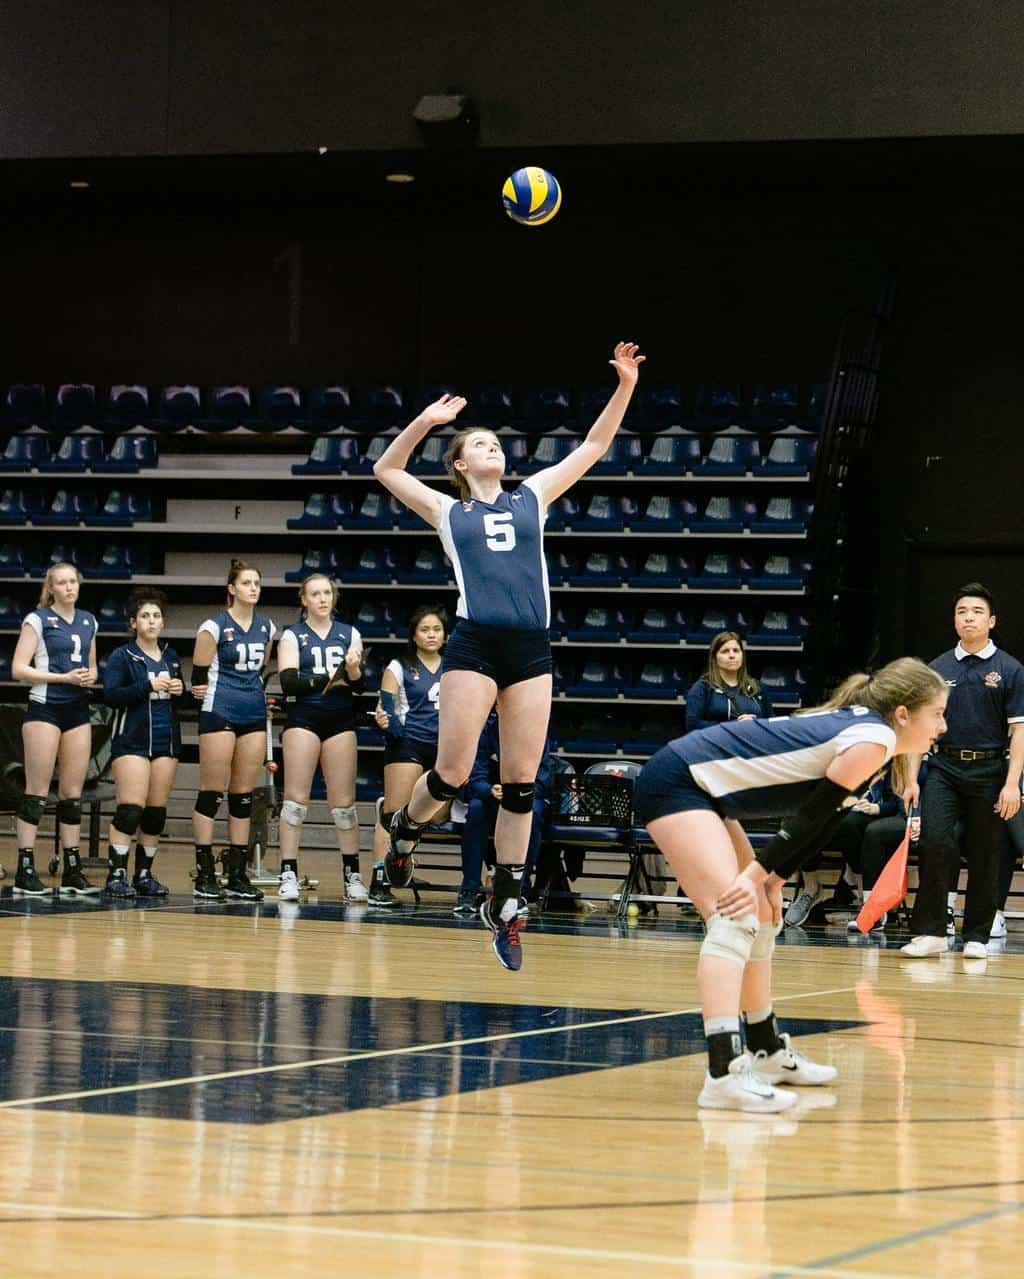 Woman jumping high while hitting volleyball